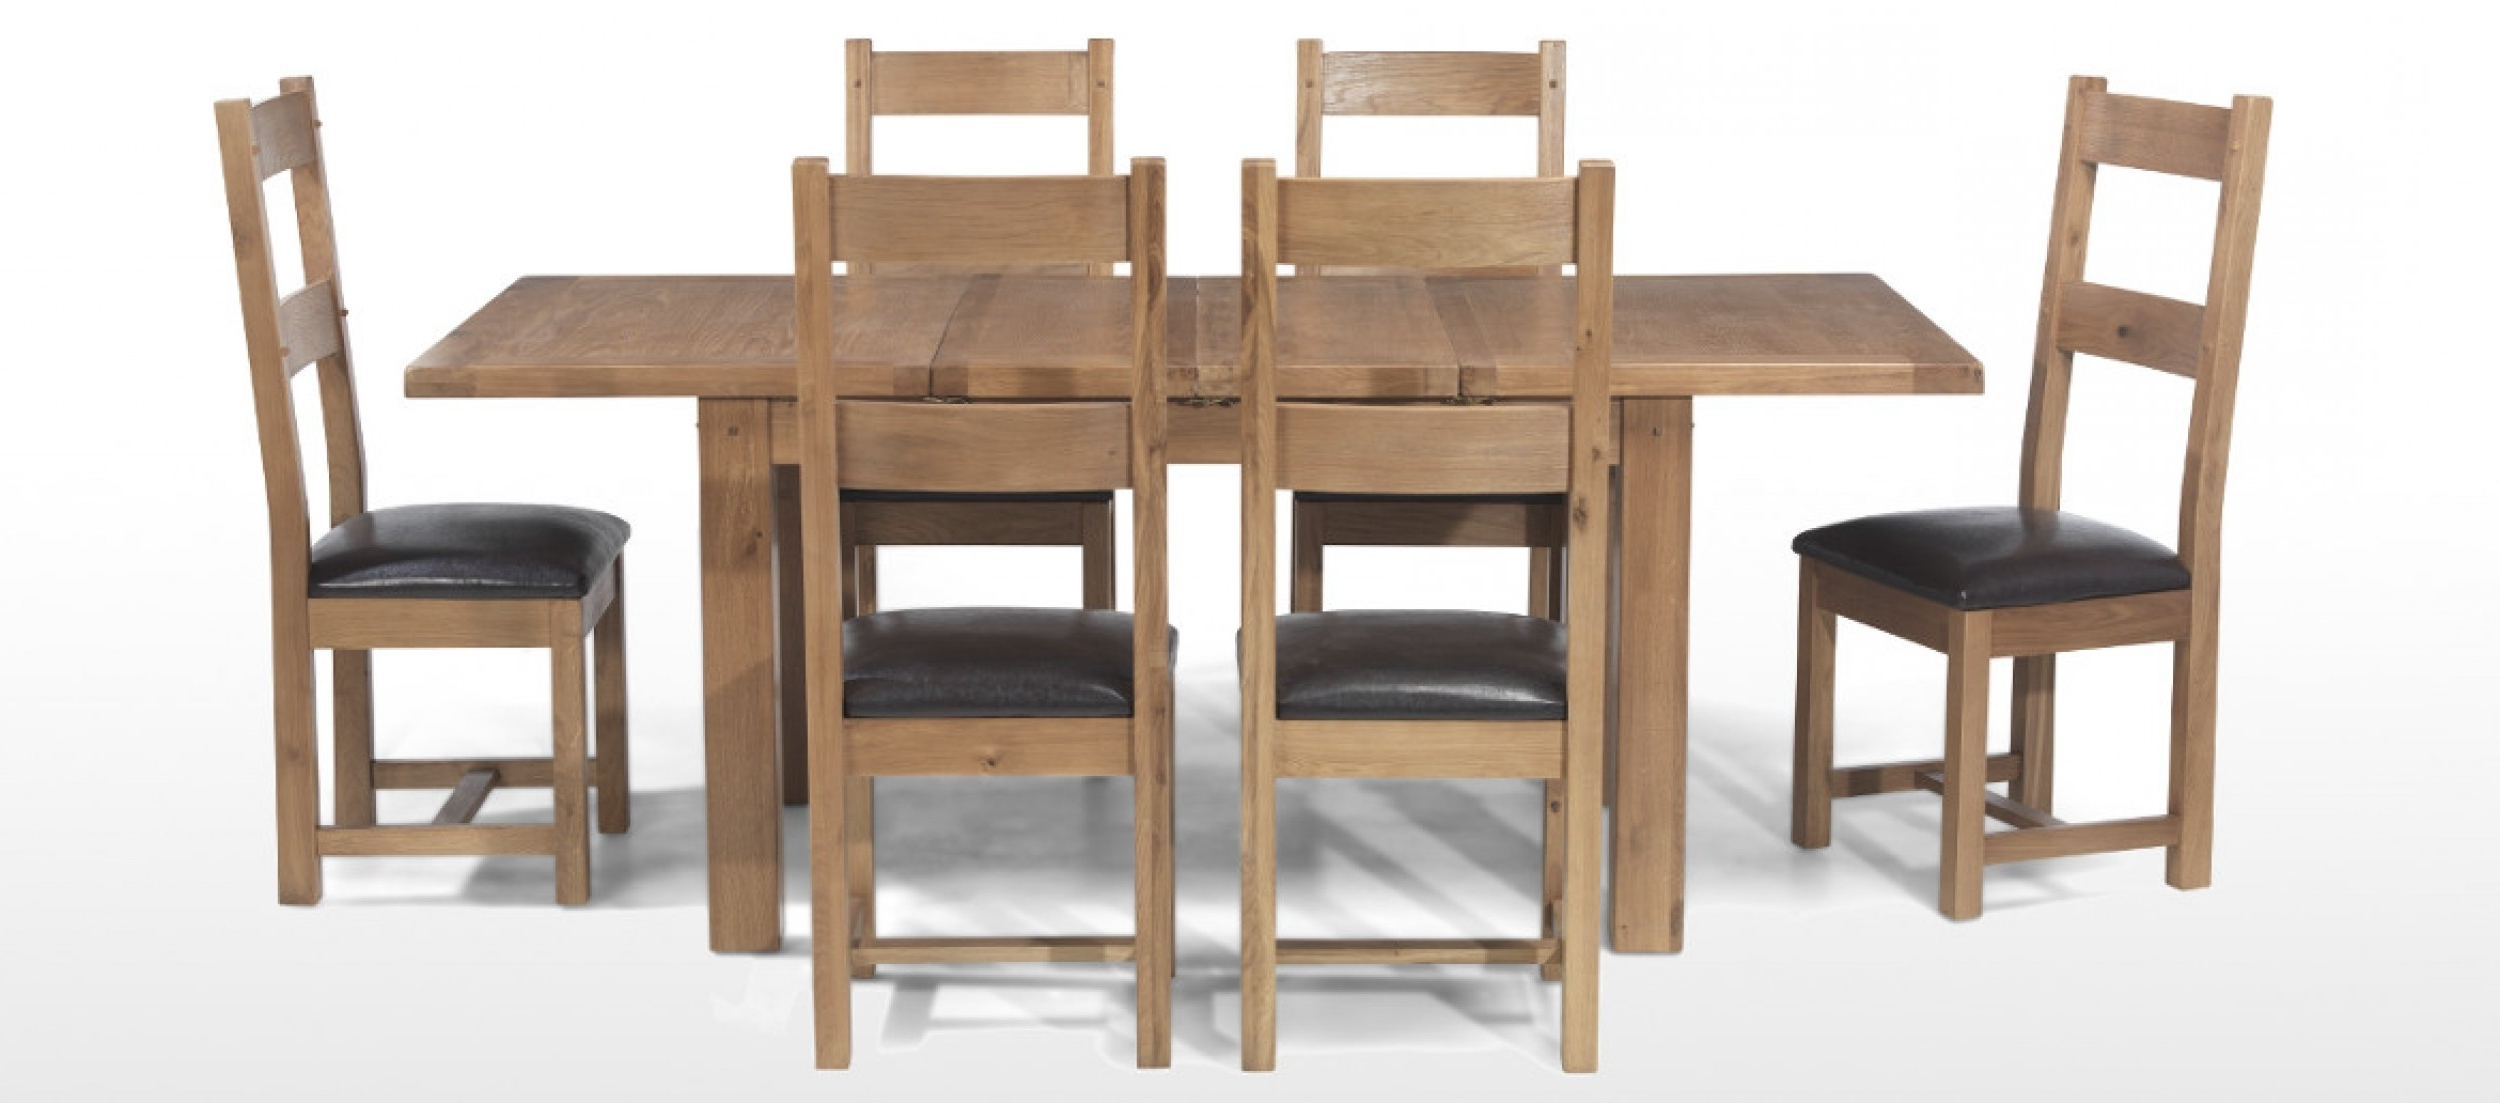 Widely Used Dining Tables Chairs Throughout Rustic Oak 132 198 Cm Extending Dining Table And 6 Chairs (View 25 of 25)